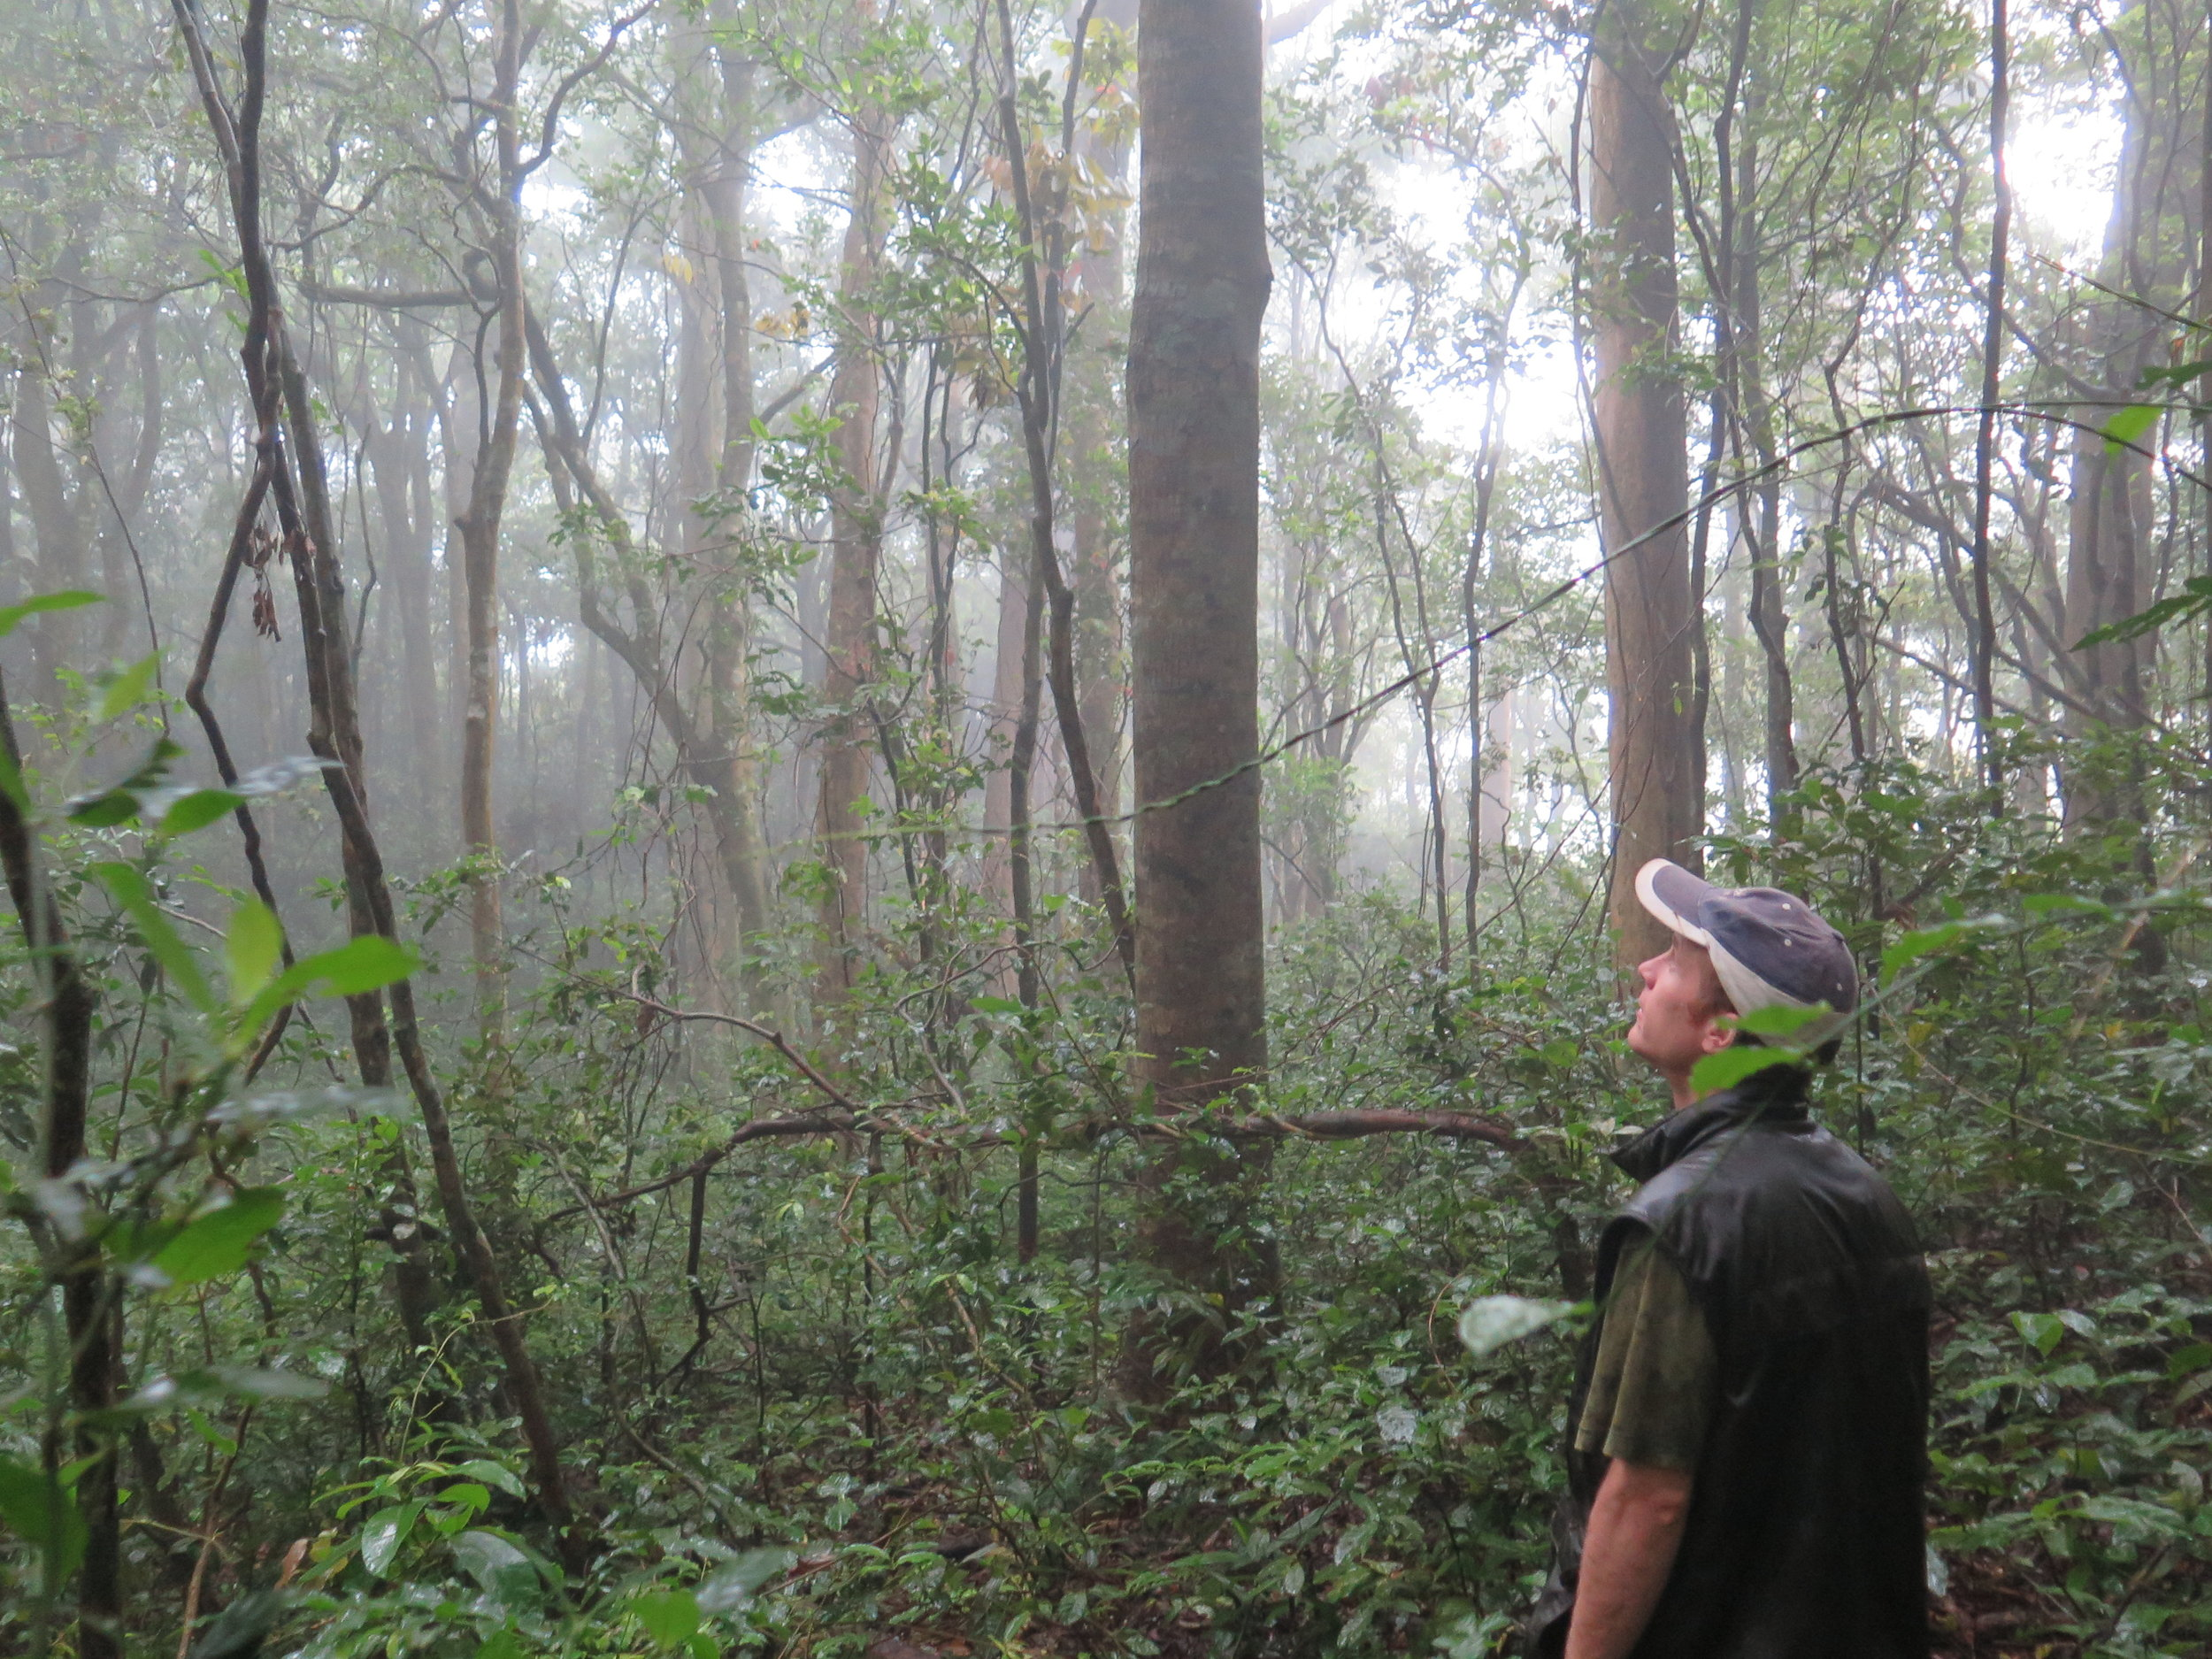 Location: Monteverde Cloud Forest  Seeking naturally wind-fallen hardwoods within the Cloud Forest.